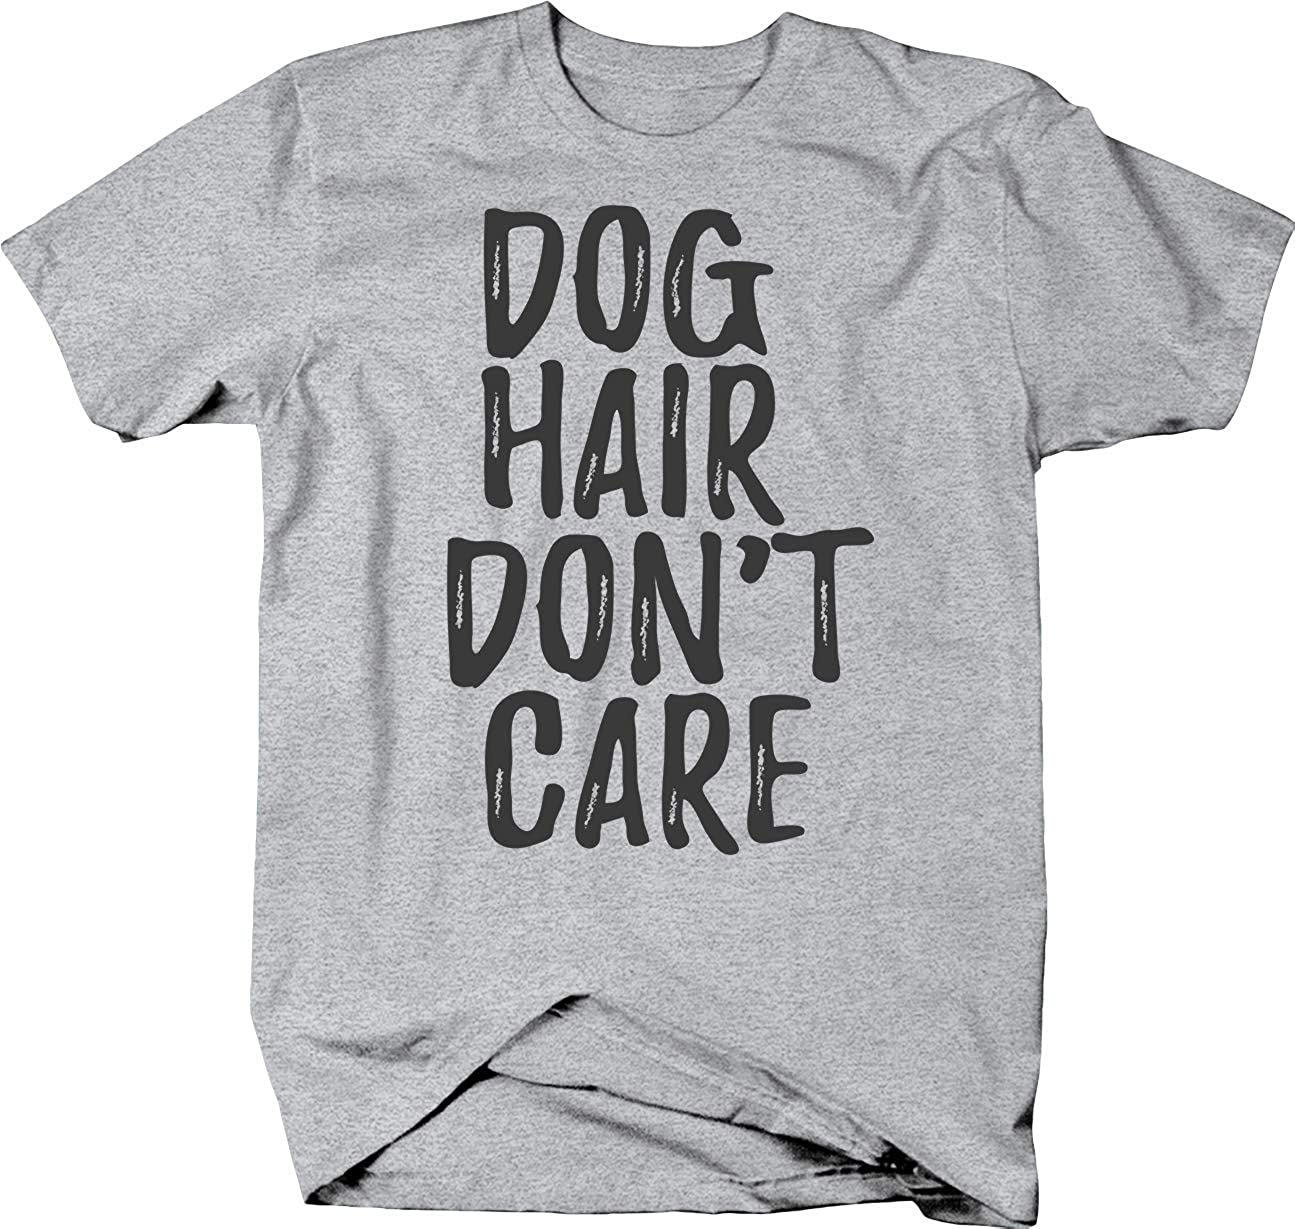 Dog Hair Don't Care Funny Crazy Dog Lady Animal Lover Pet Owner T Shirt for Men